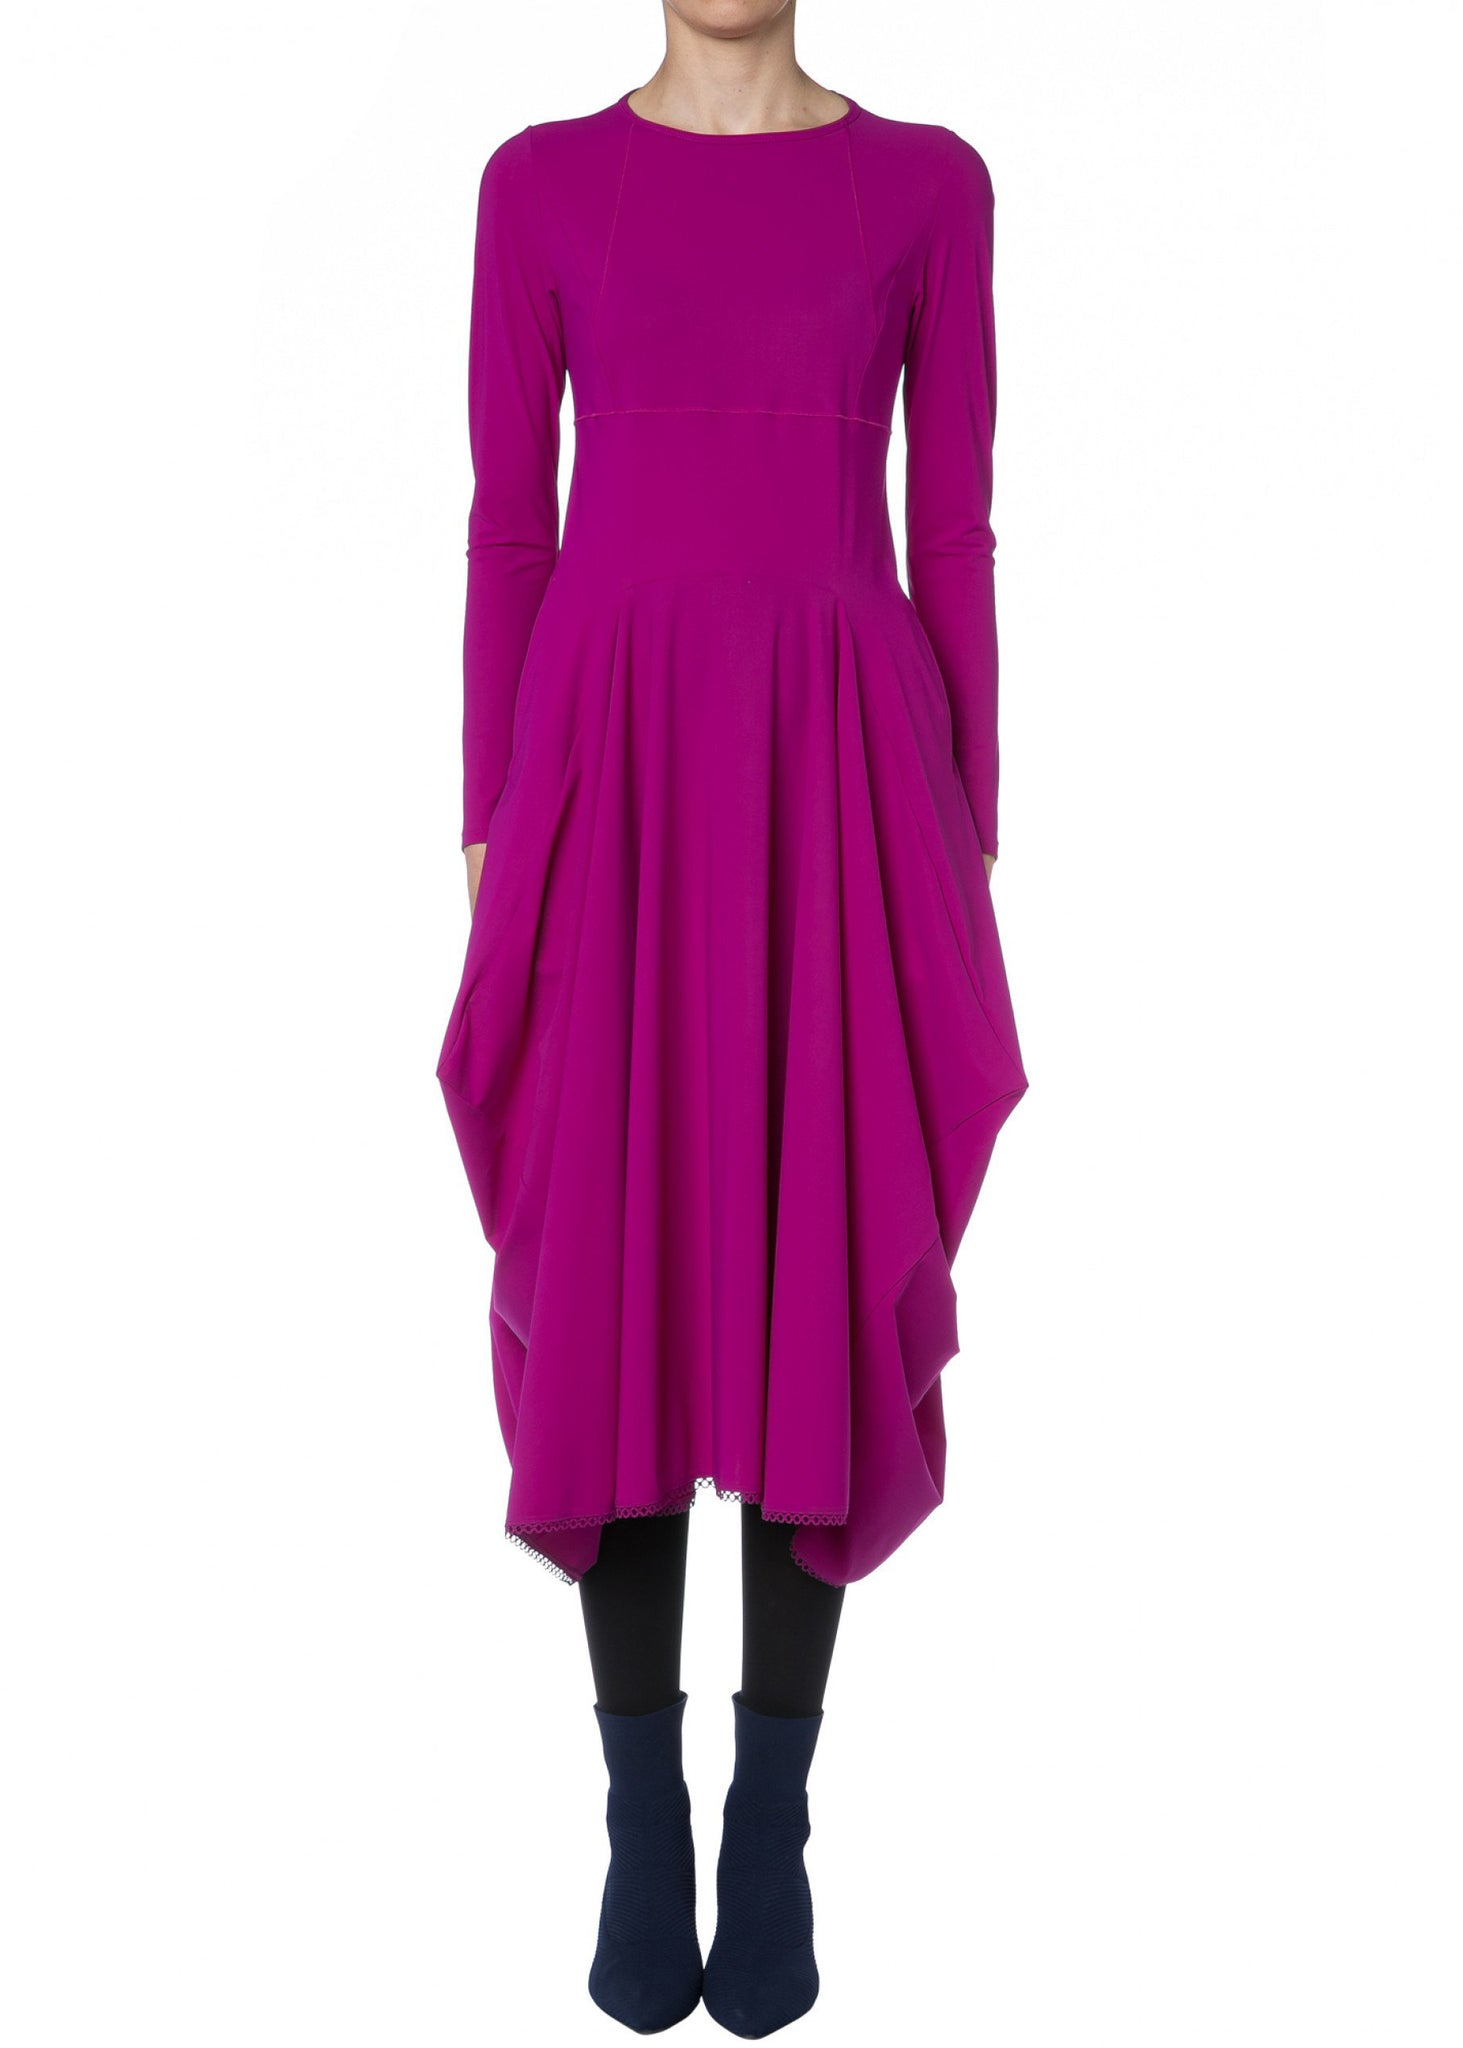 High Stretchkleid EXCLAIM in Magenta mit 3/4-Ärmeln, wadenlang